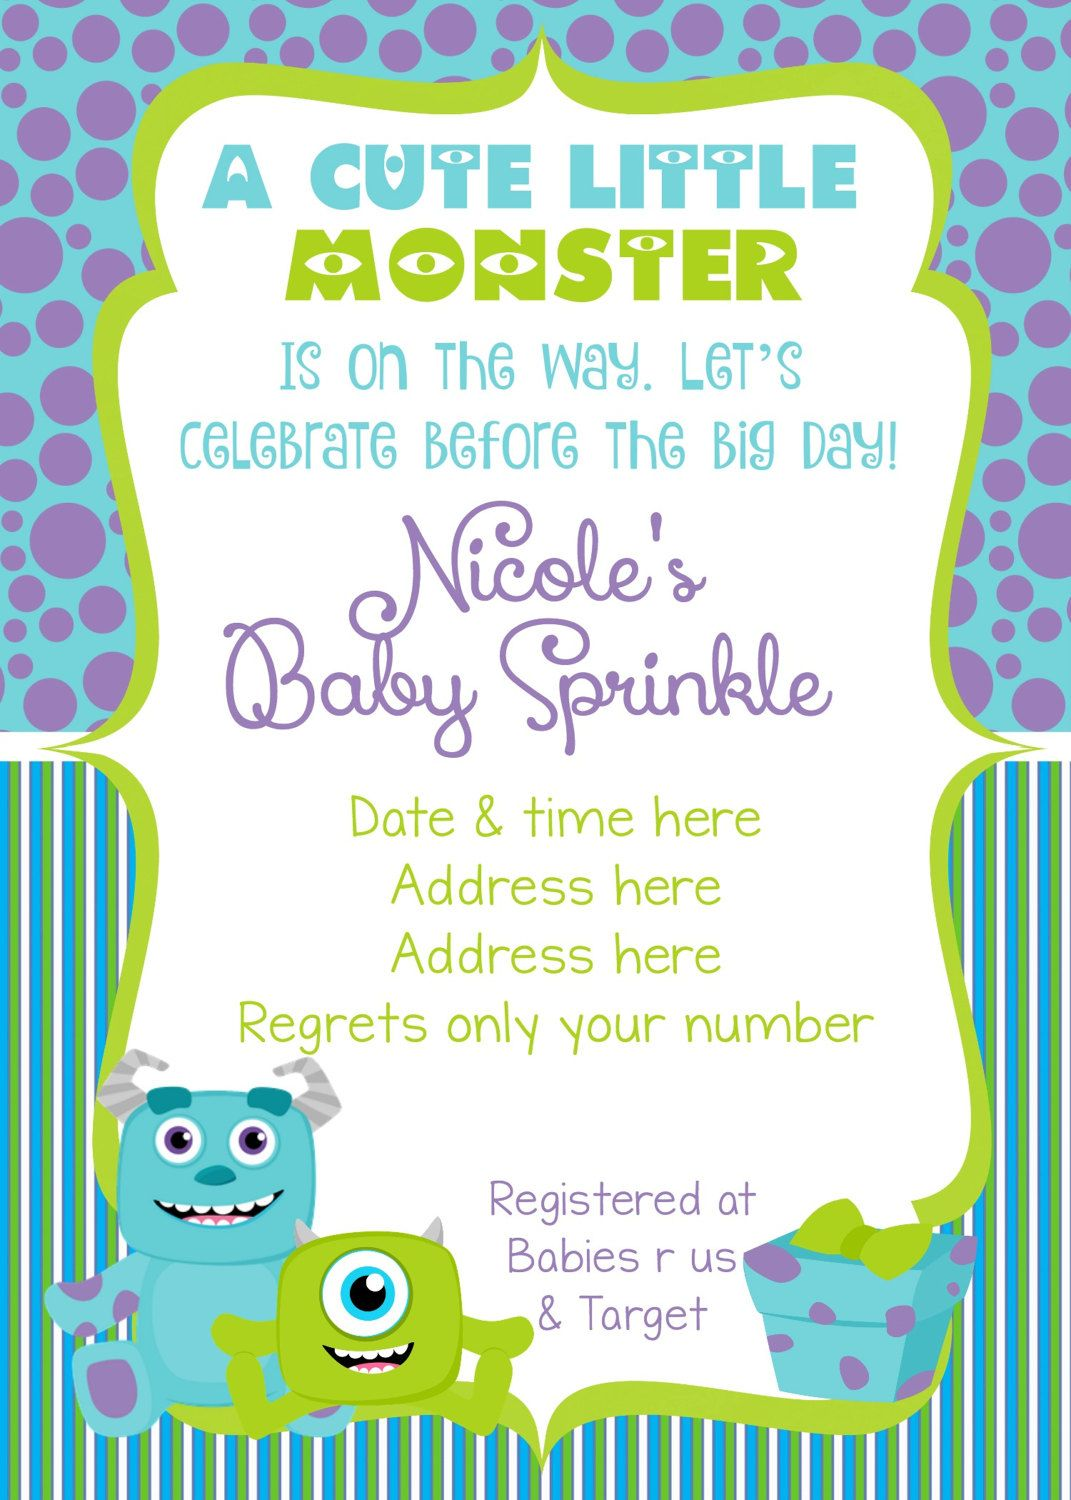 Monsters Inc Baby Shower Invitation - Monsters Inc Baby Shower ...